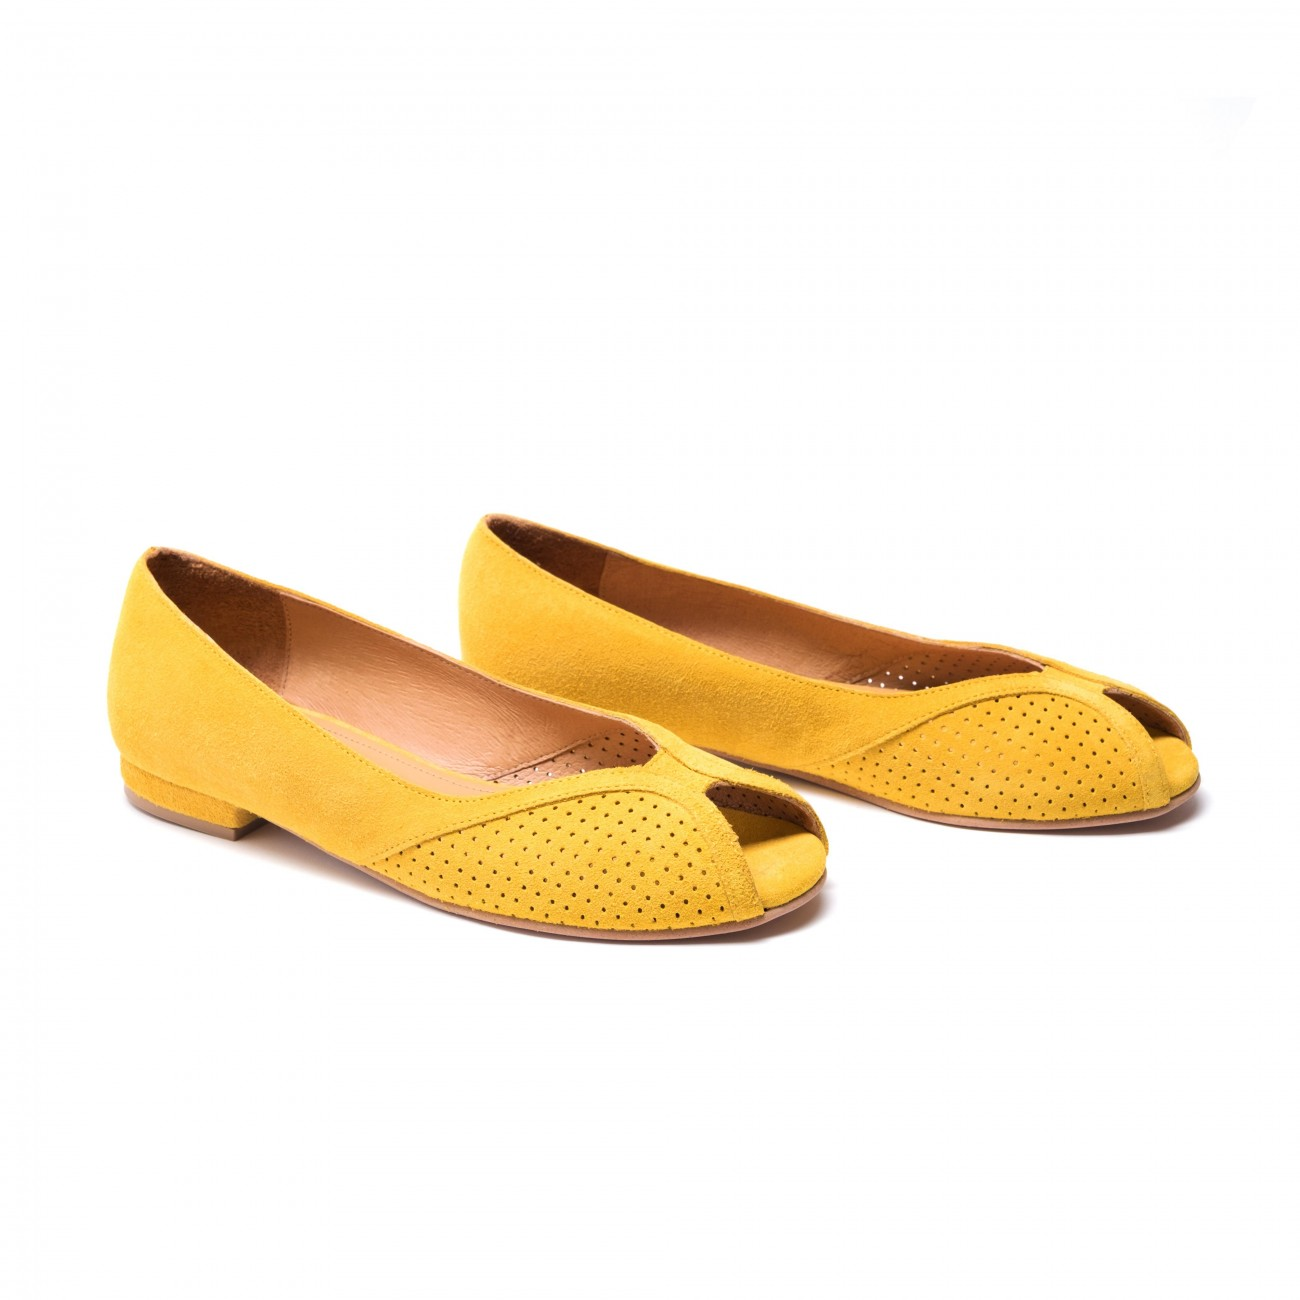 Tiffy suede yellow